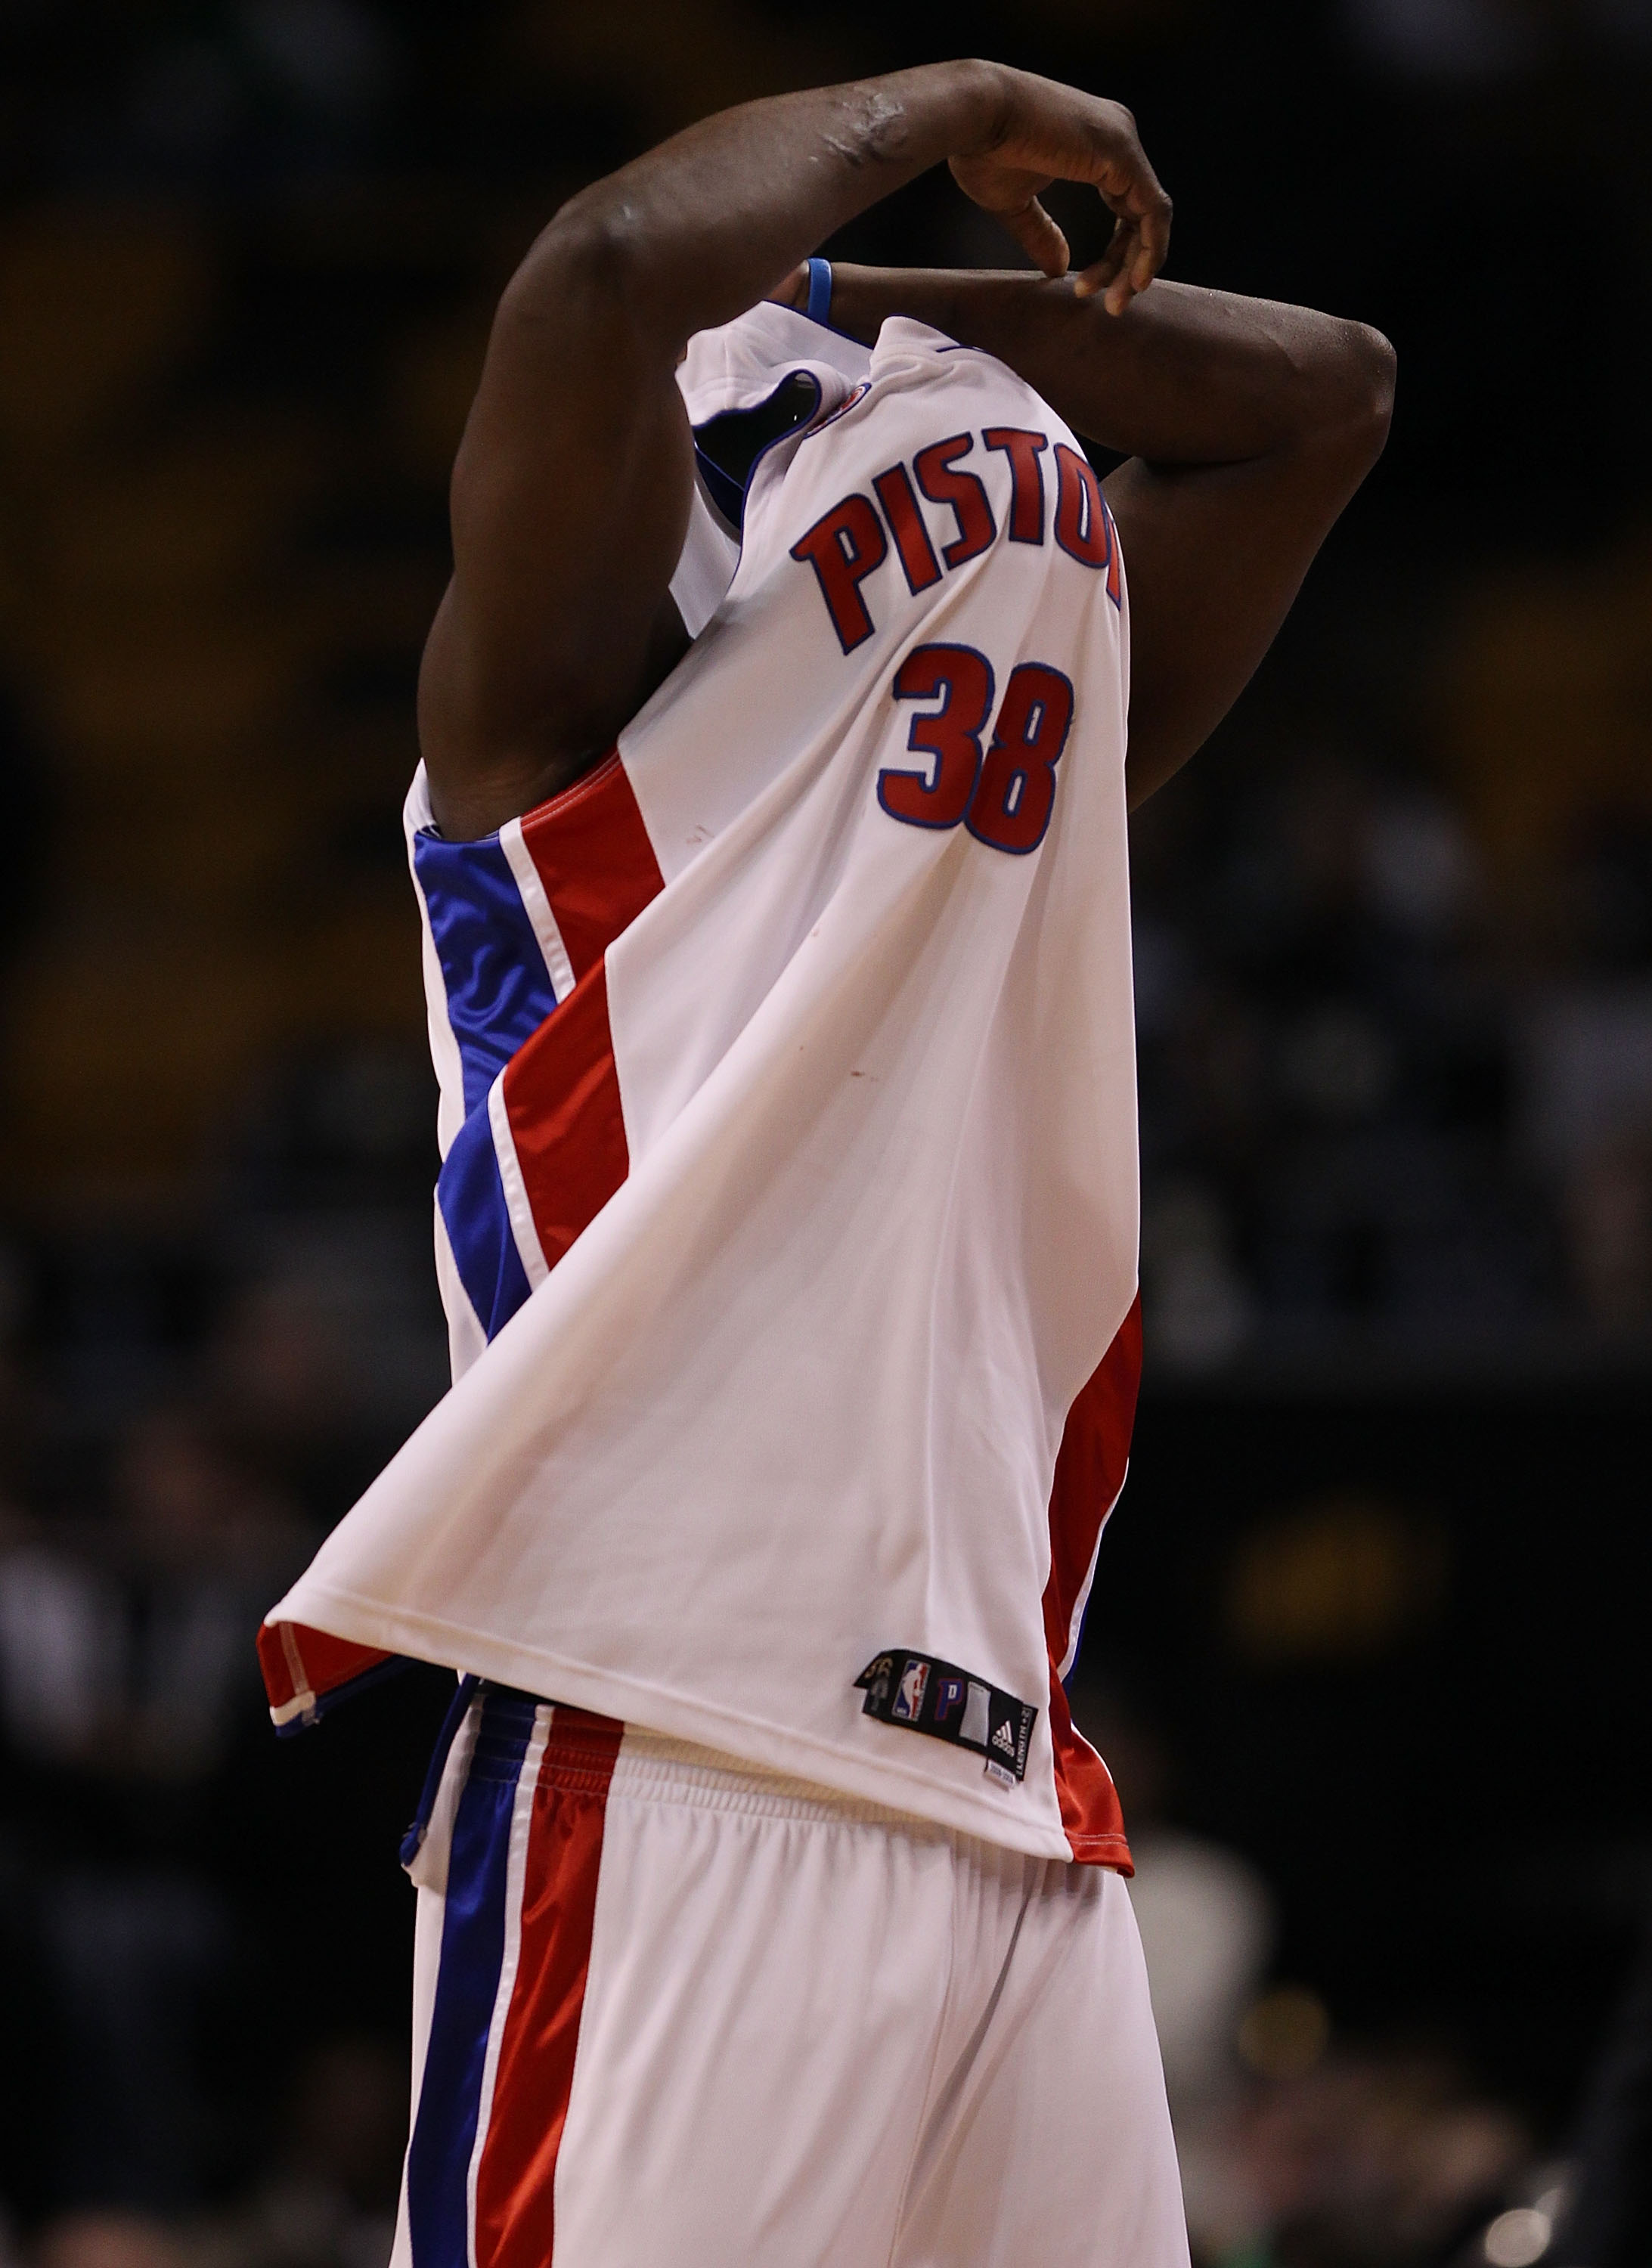 BOSTON - MARCH 15:  Kwame Brown #38 of the Detroit Pistons changes his jersey as instructed by a referee  in the second half against the Boston Celtics on March 15, 2010 at the TD Garden in Boston, Massachusetts. The Celtics defeated the Pistons 119-93.